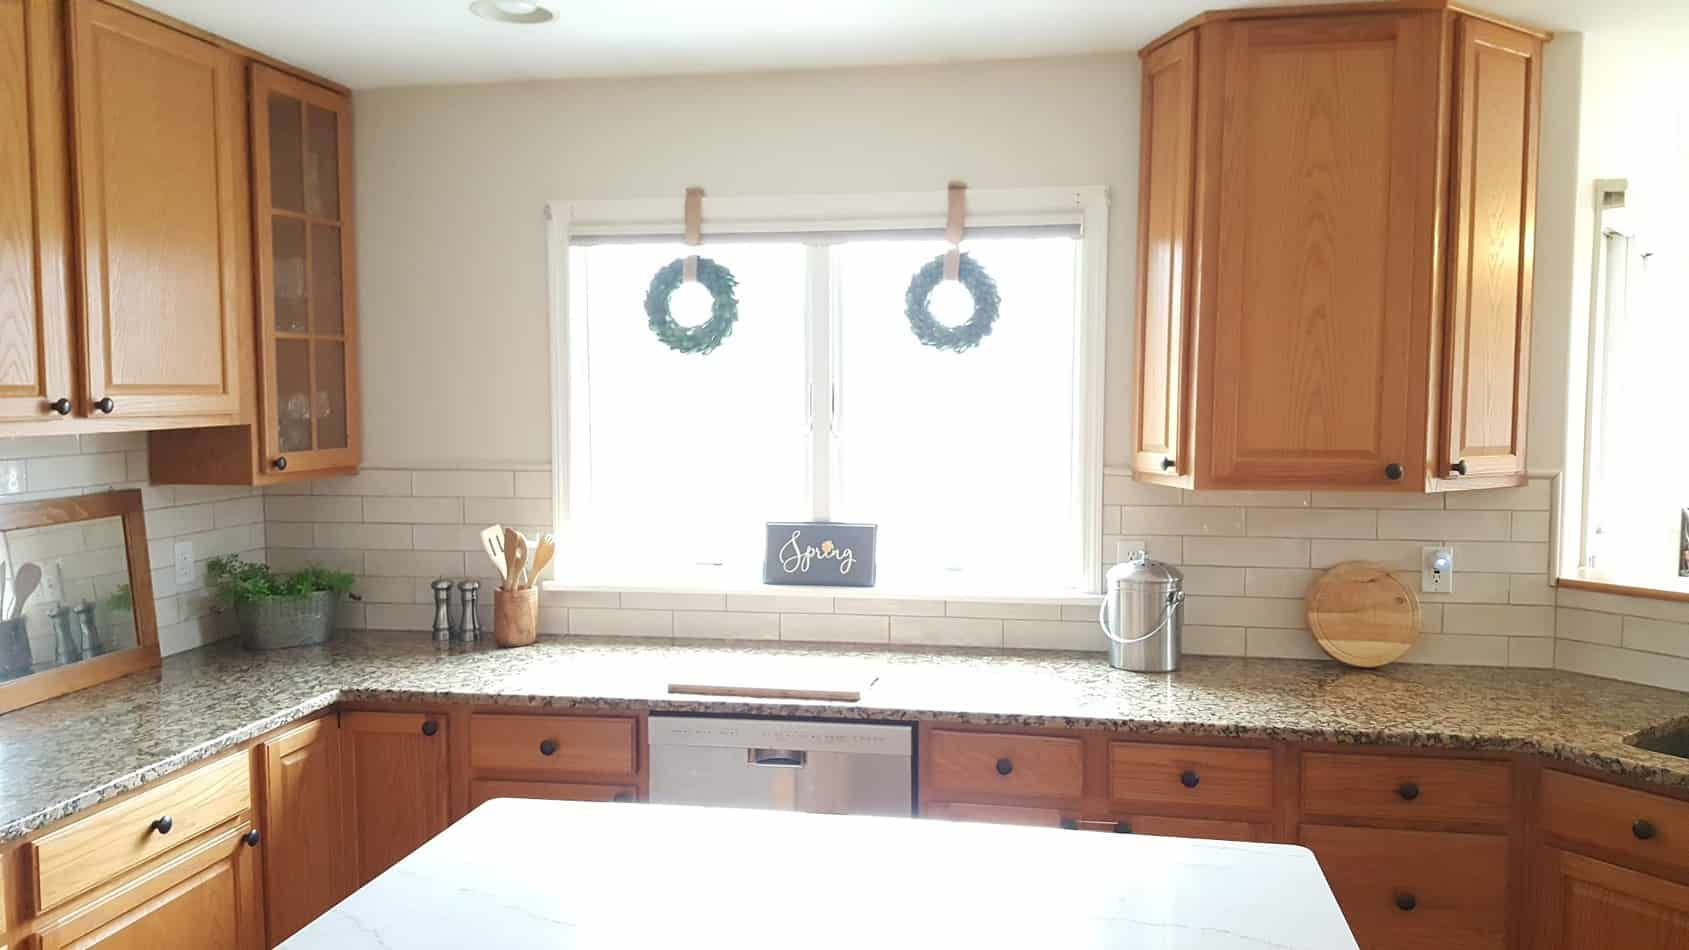 update kitchen with oak cabinets without painting them - after